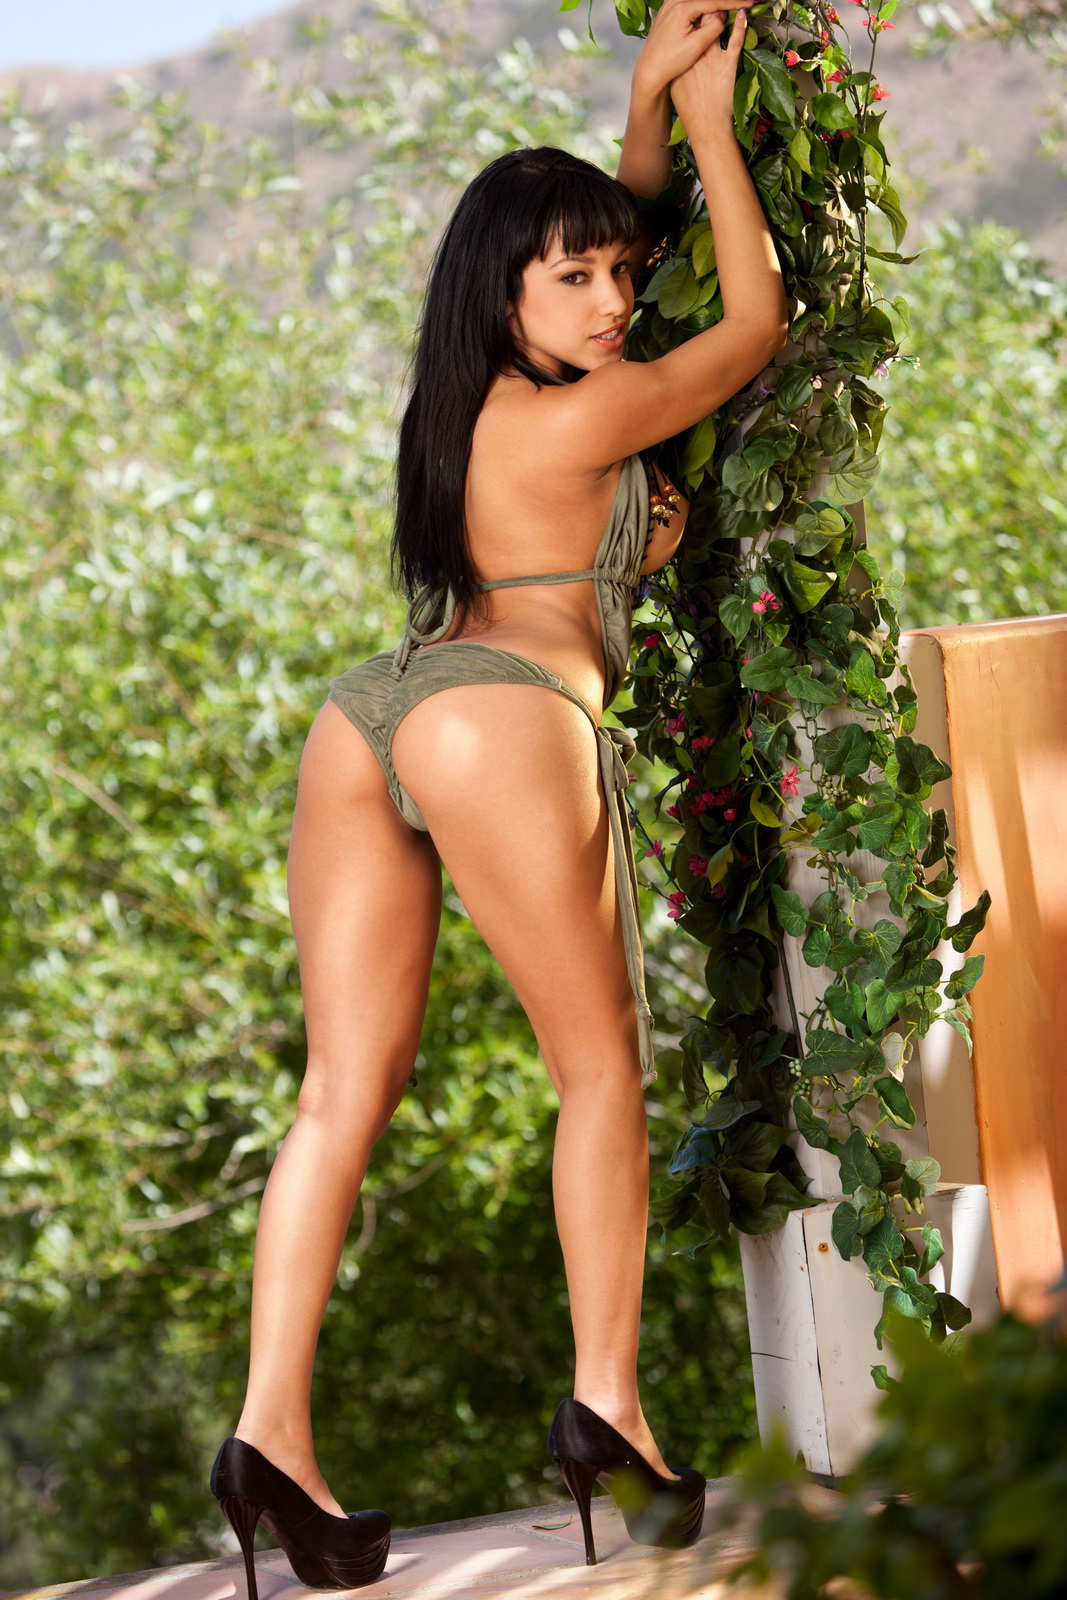 abella anderson green shirt xhamster porns, huge